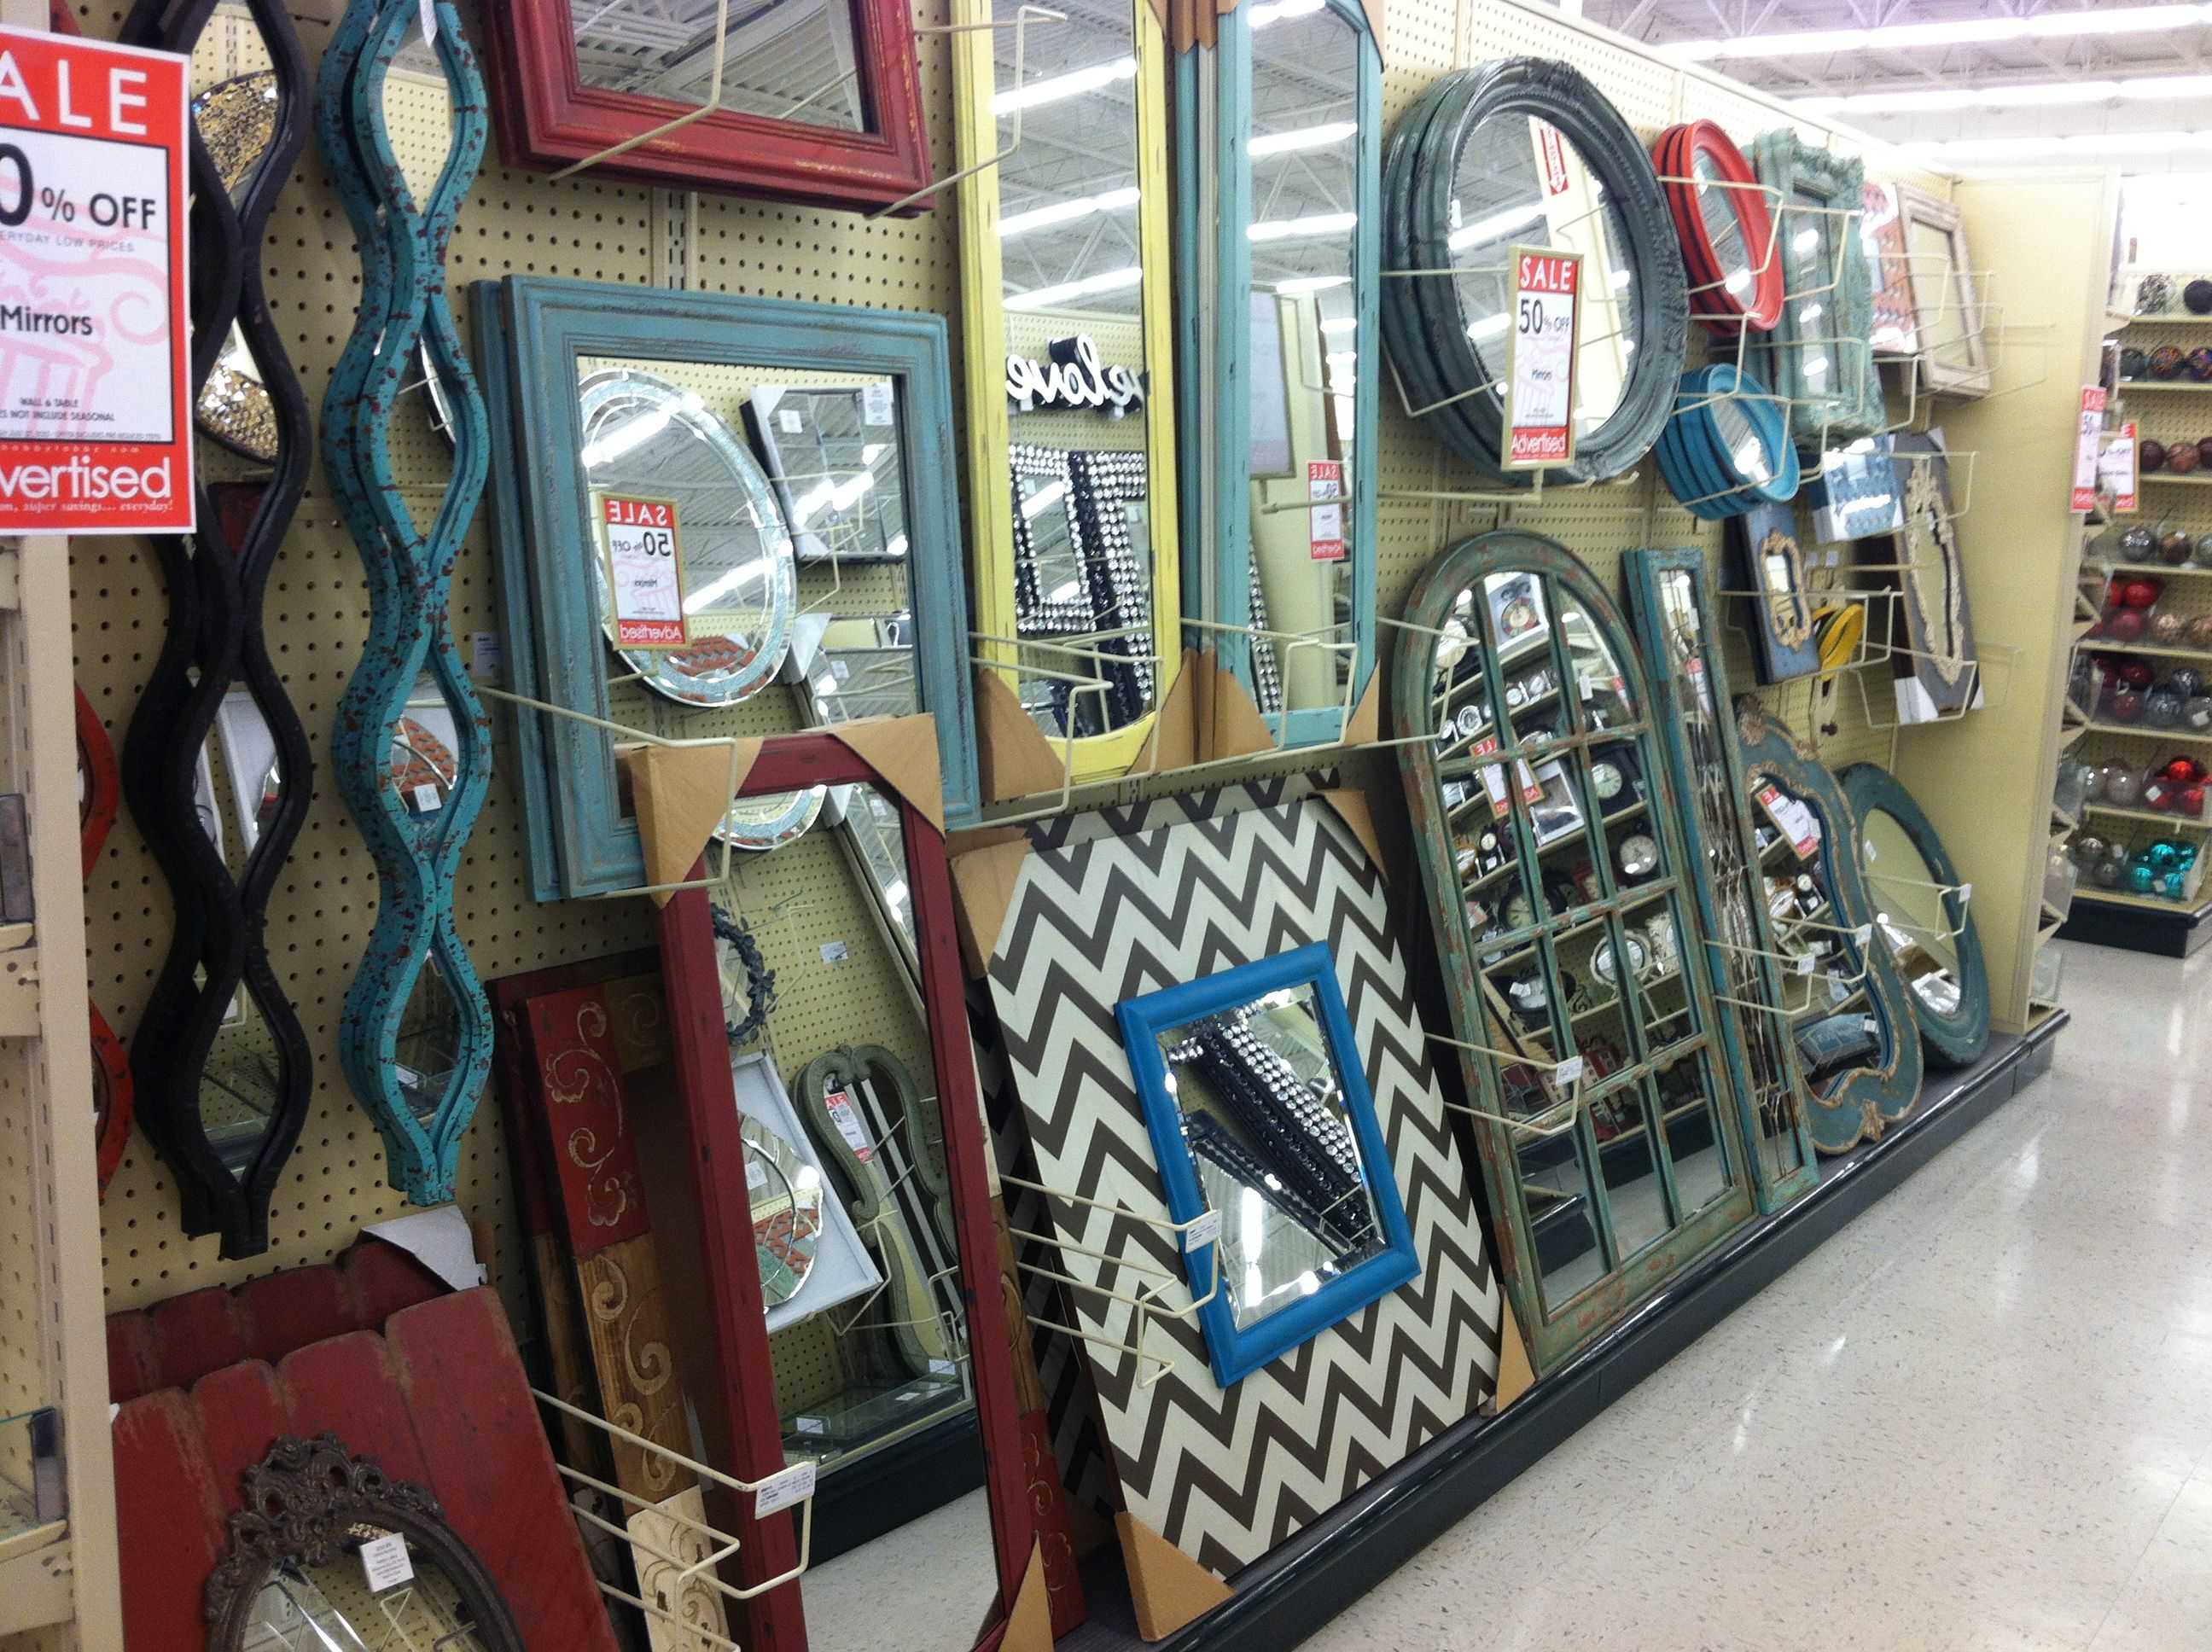 Hobby lobby turquiose long mirror for mantle love the arched one